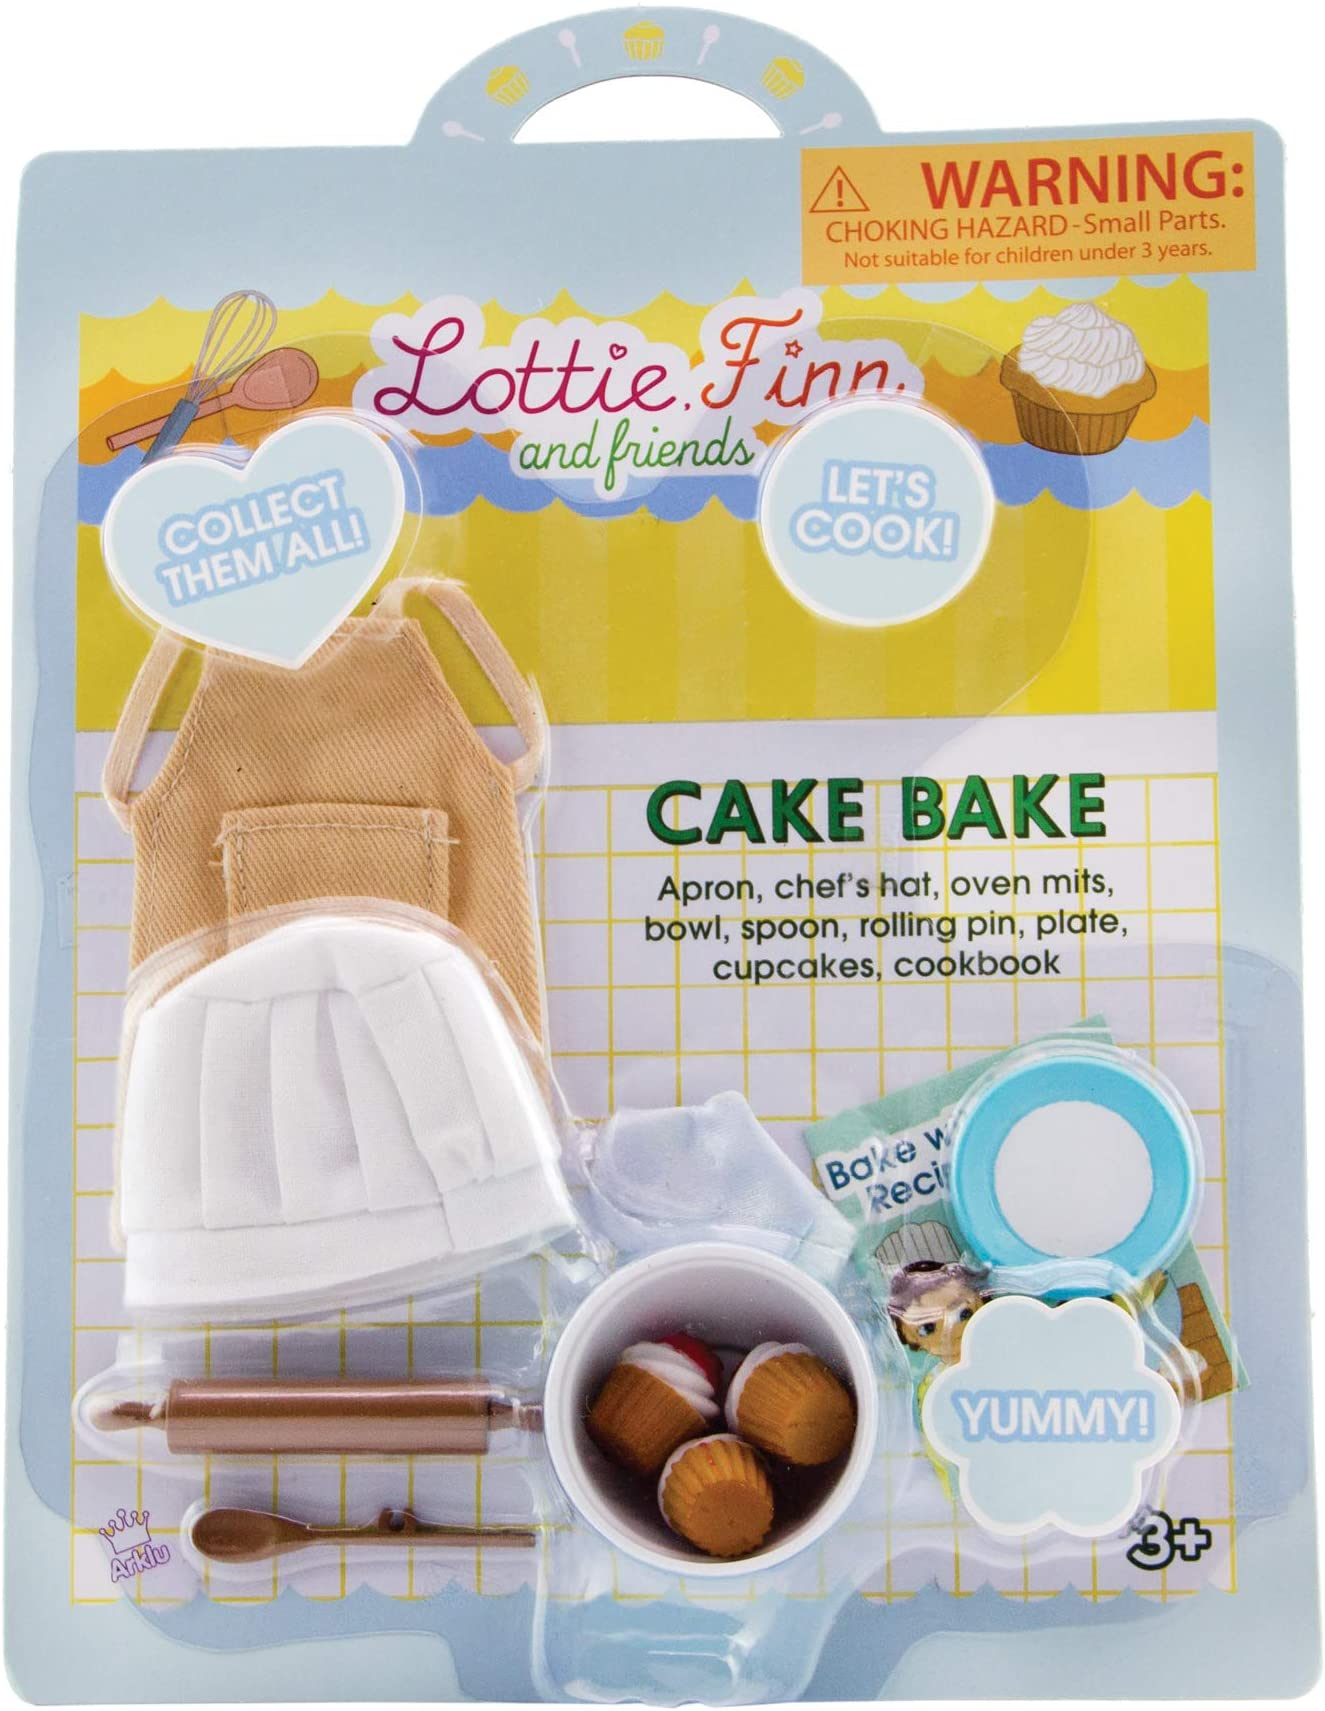 Lottie Cake Bake Doll Accessories | Chef Doll Accessories | Doll Apron | Doll Baking Set | Doll Cooking Accessories | Doll Kitchen Accessories | Cupcake Doll Accessories | Baker Doll | Cook Doll